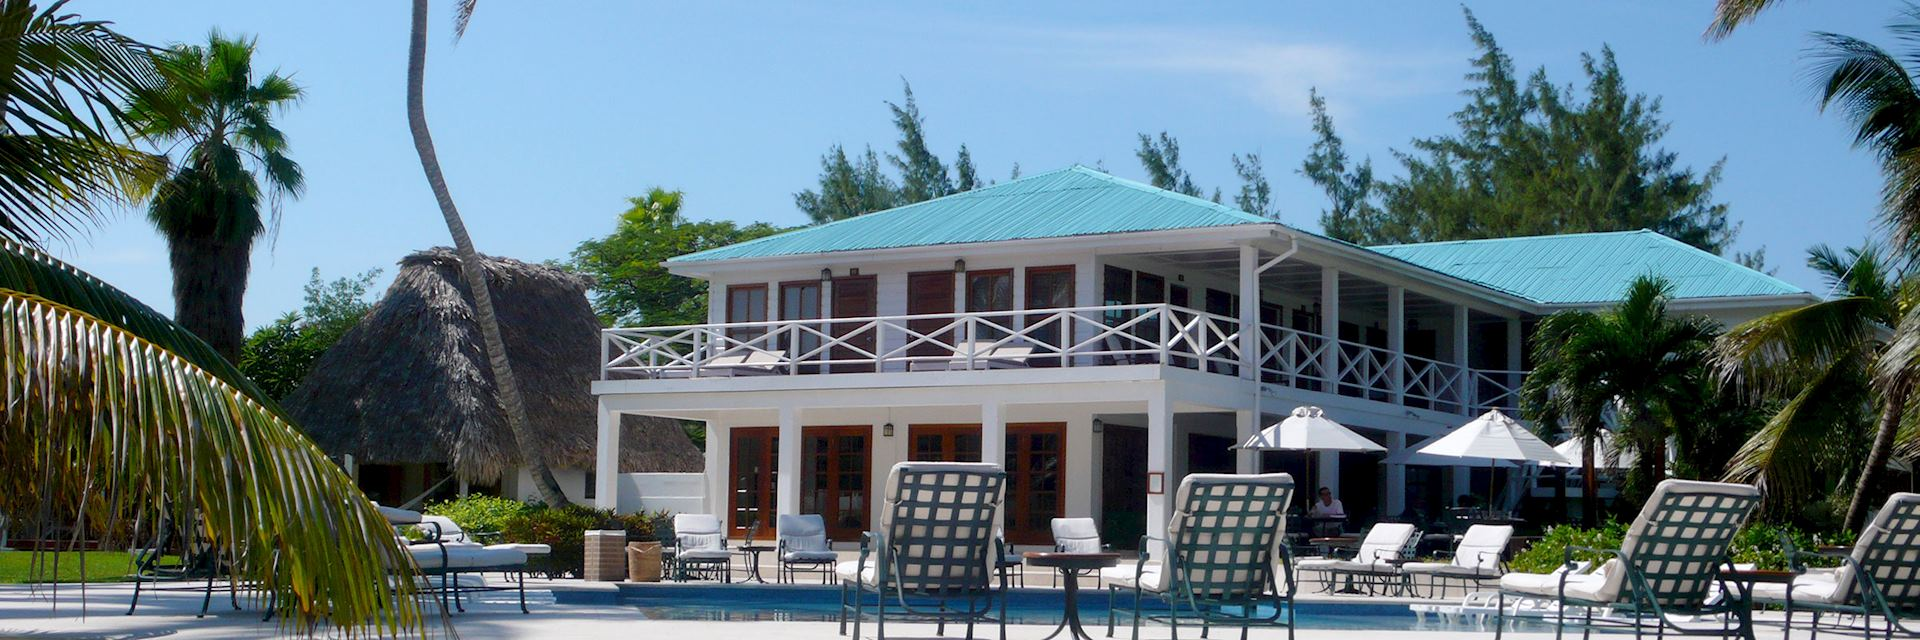 Victoria House, Ambergris Caye